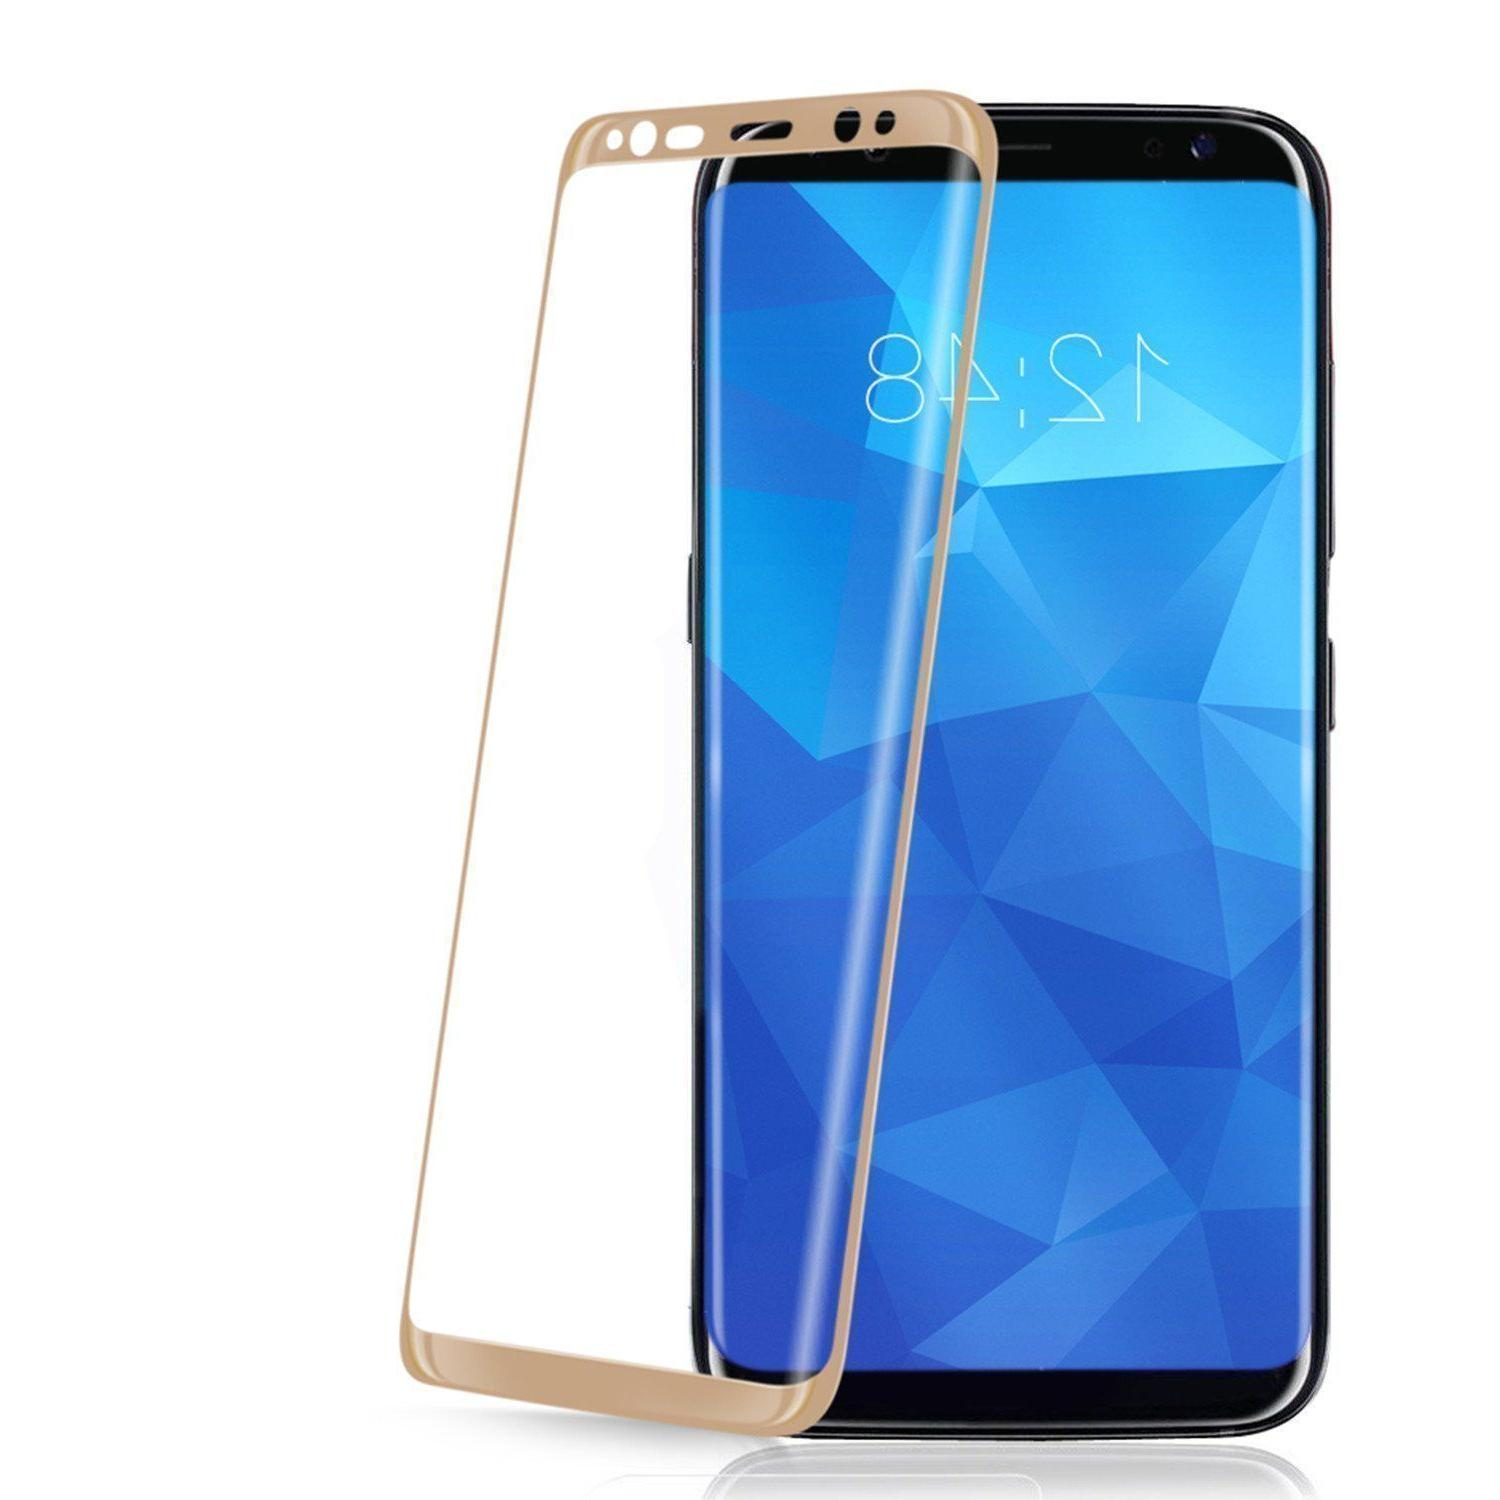 Samsung S9 Plus Note 9 4D Cover Tempered Glass